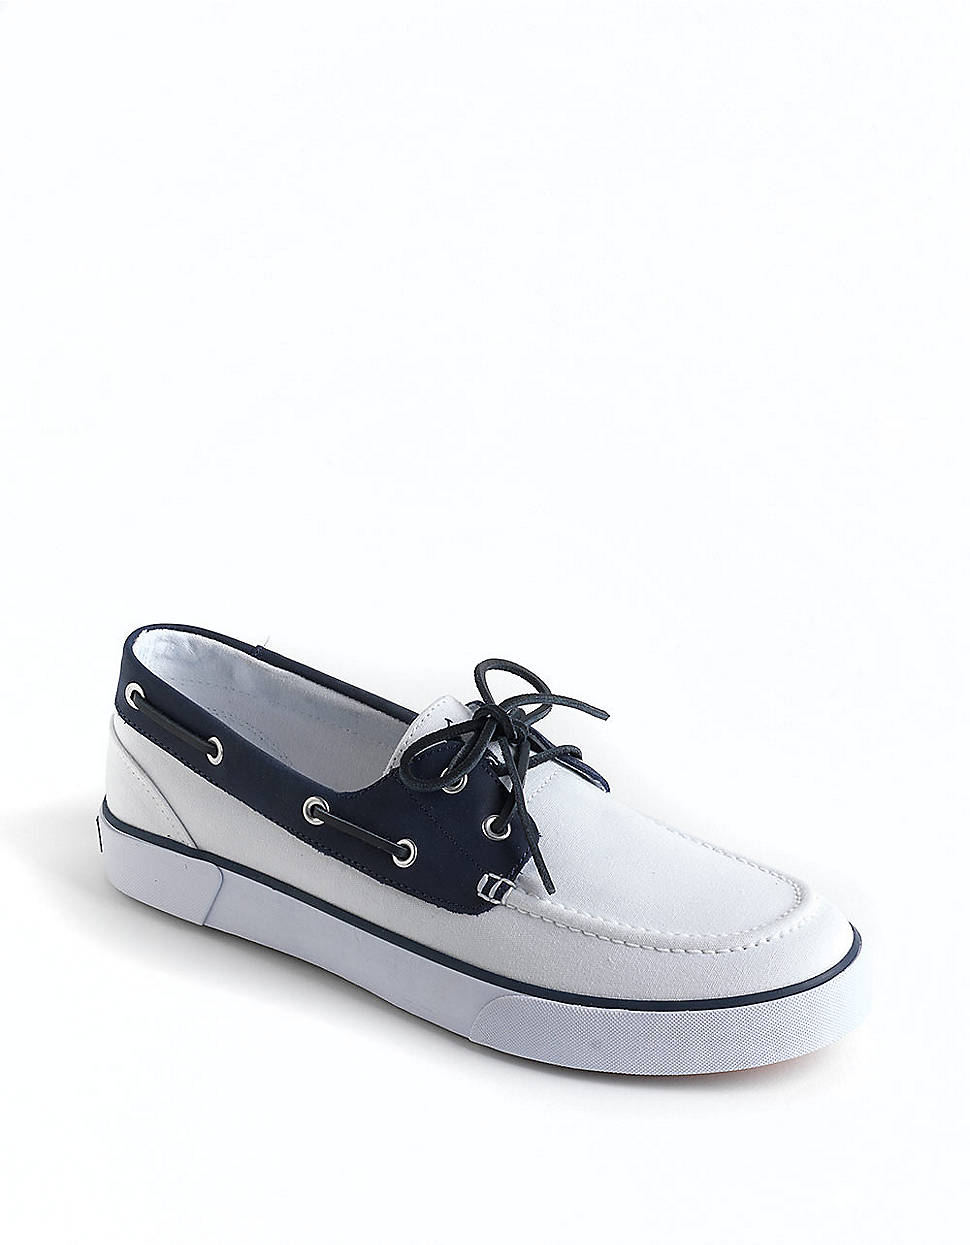 polo ralph rylander canvas and leather boat shoes